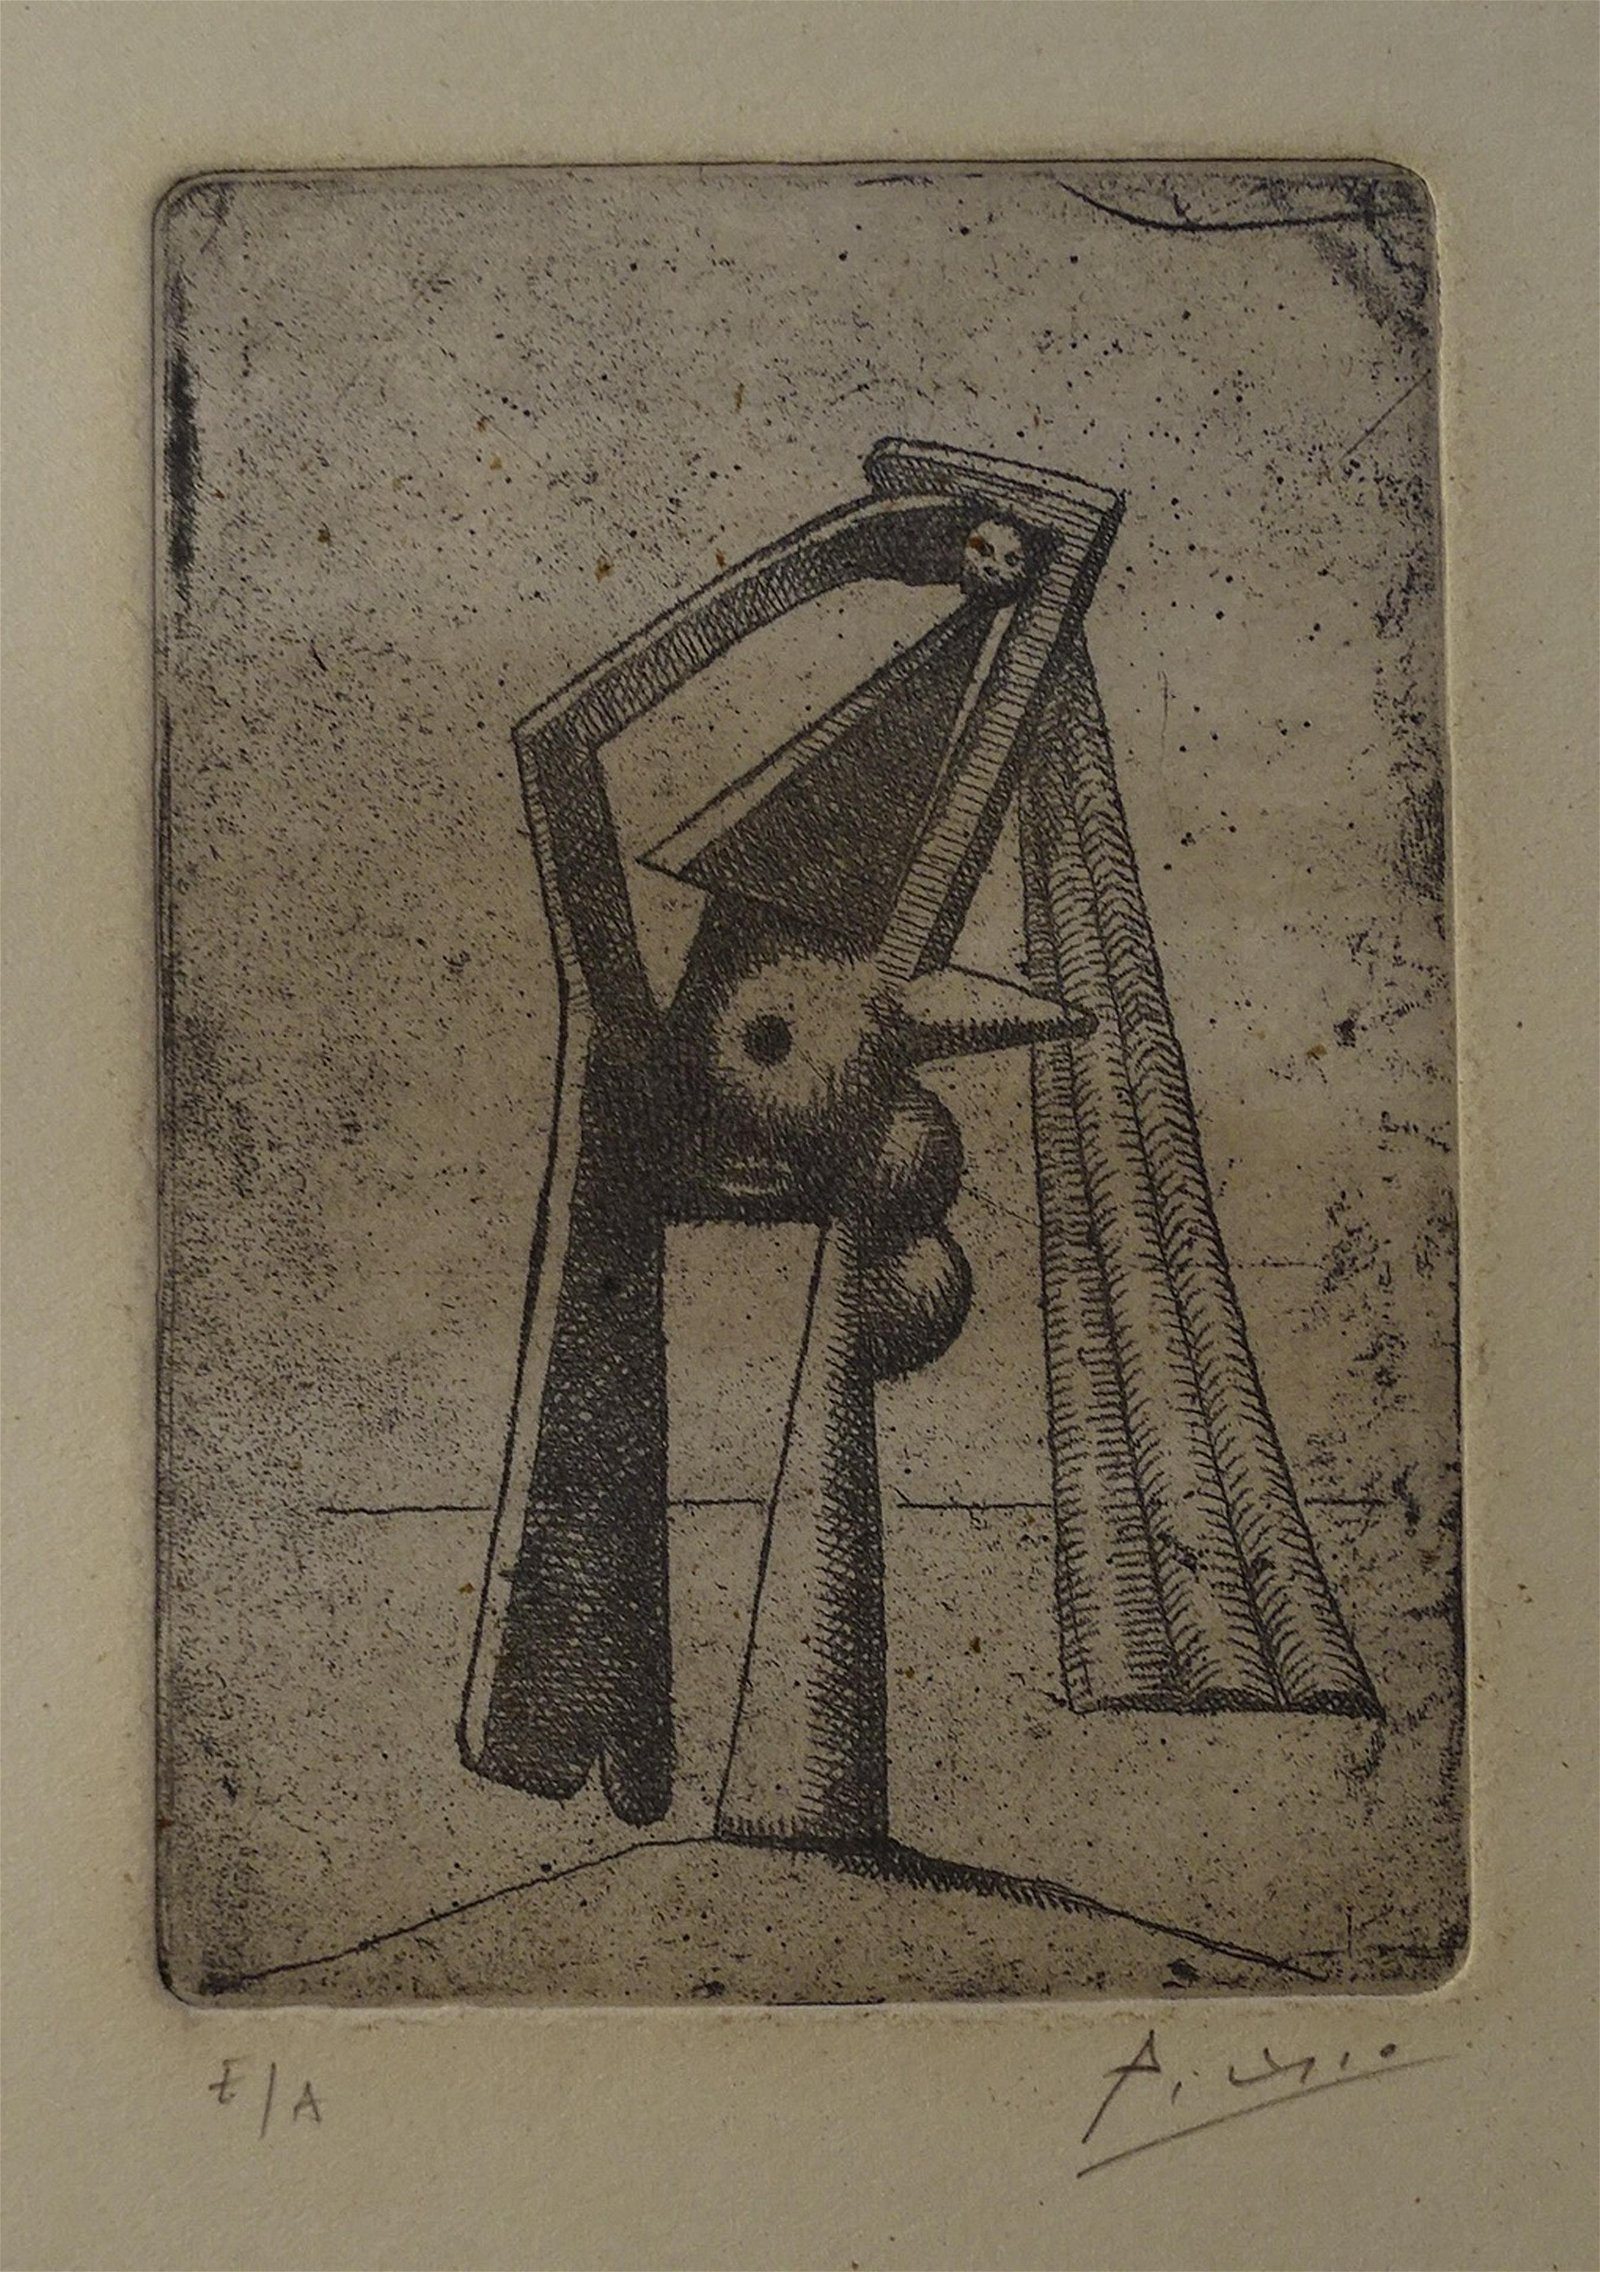 Pablo Picasso, gravure, hand signed